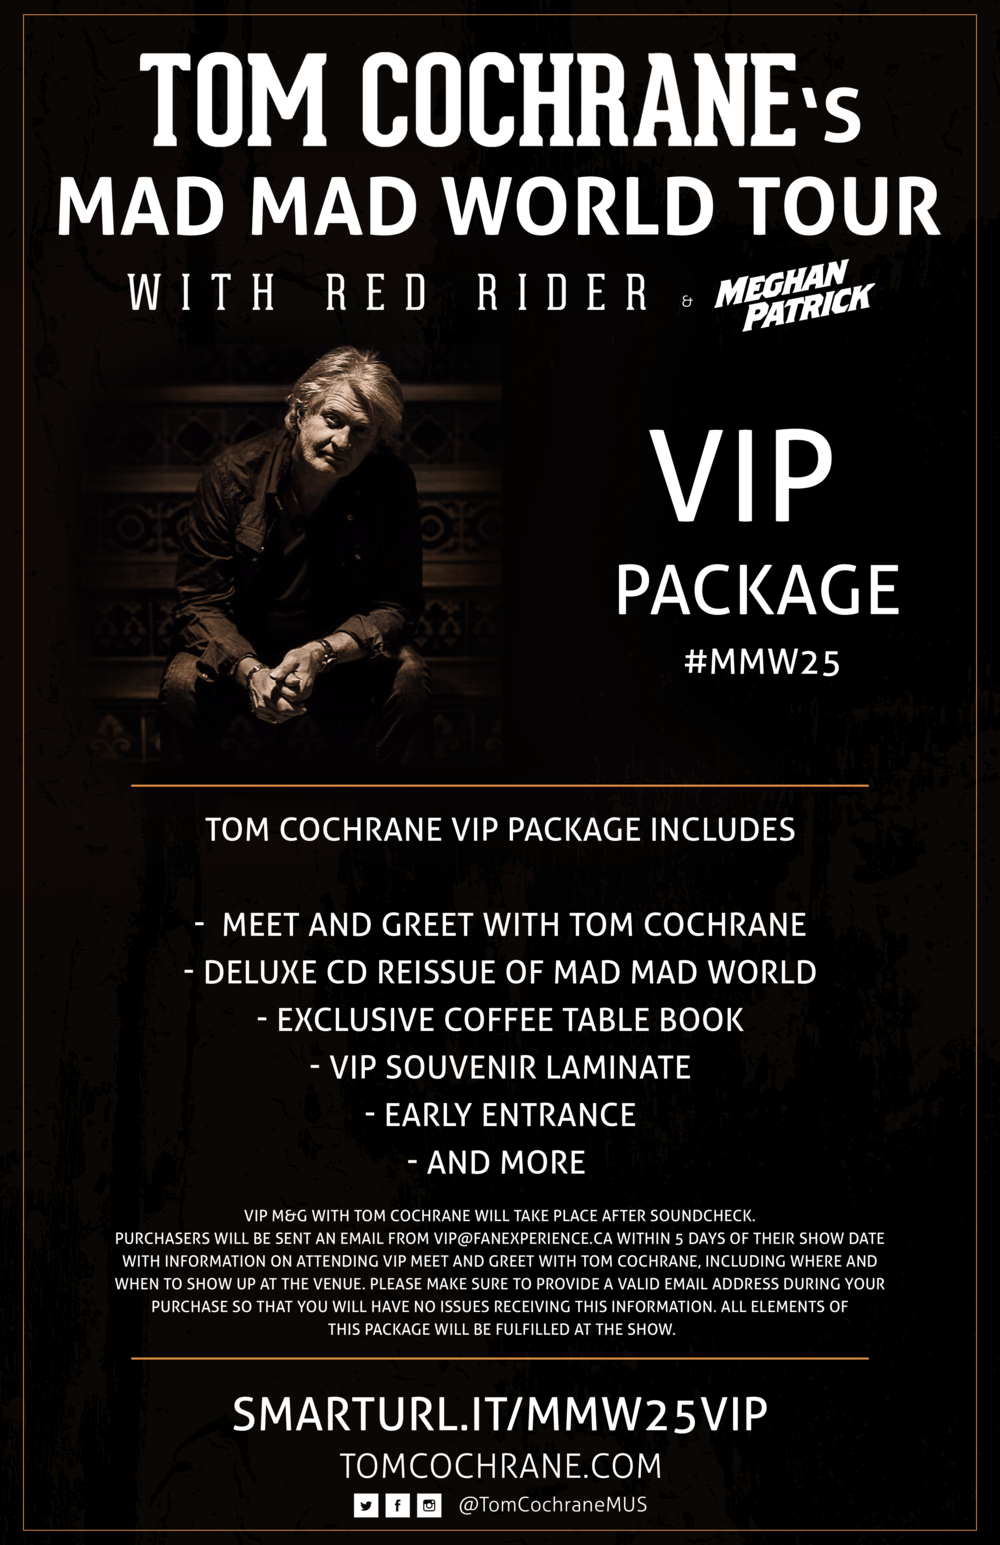 TOMCOCHRANE-VIPPACK-OCT31-01.png